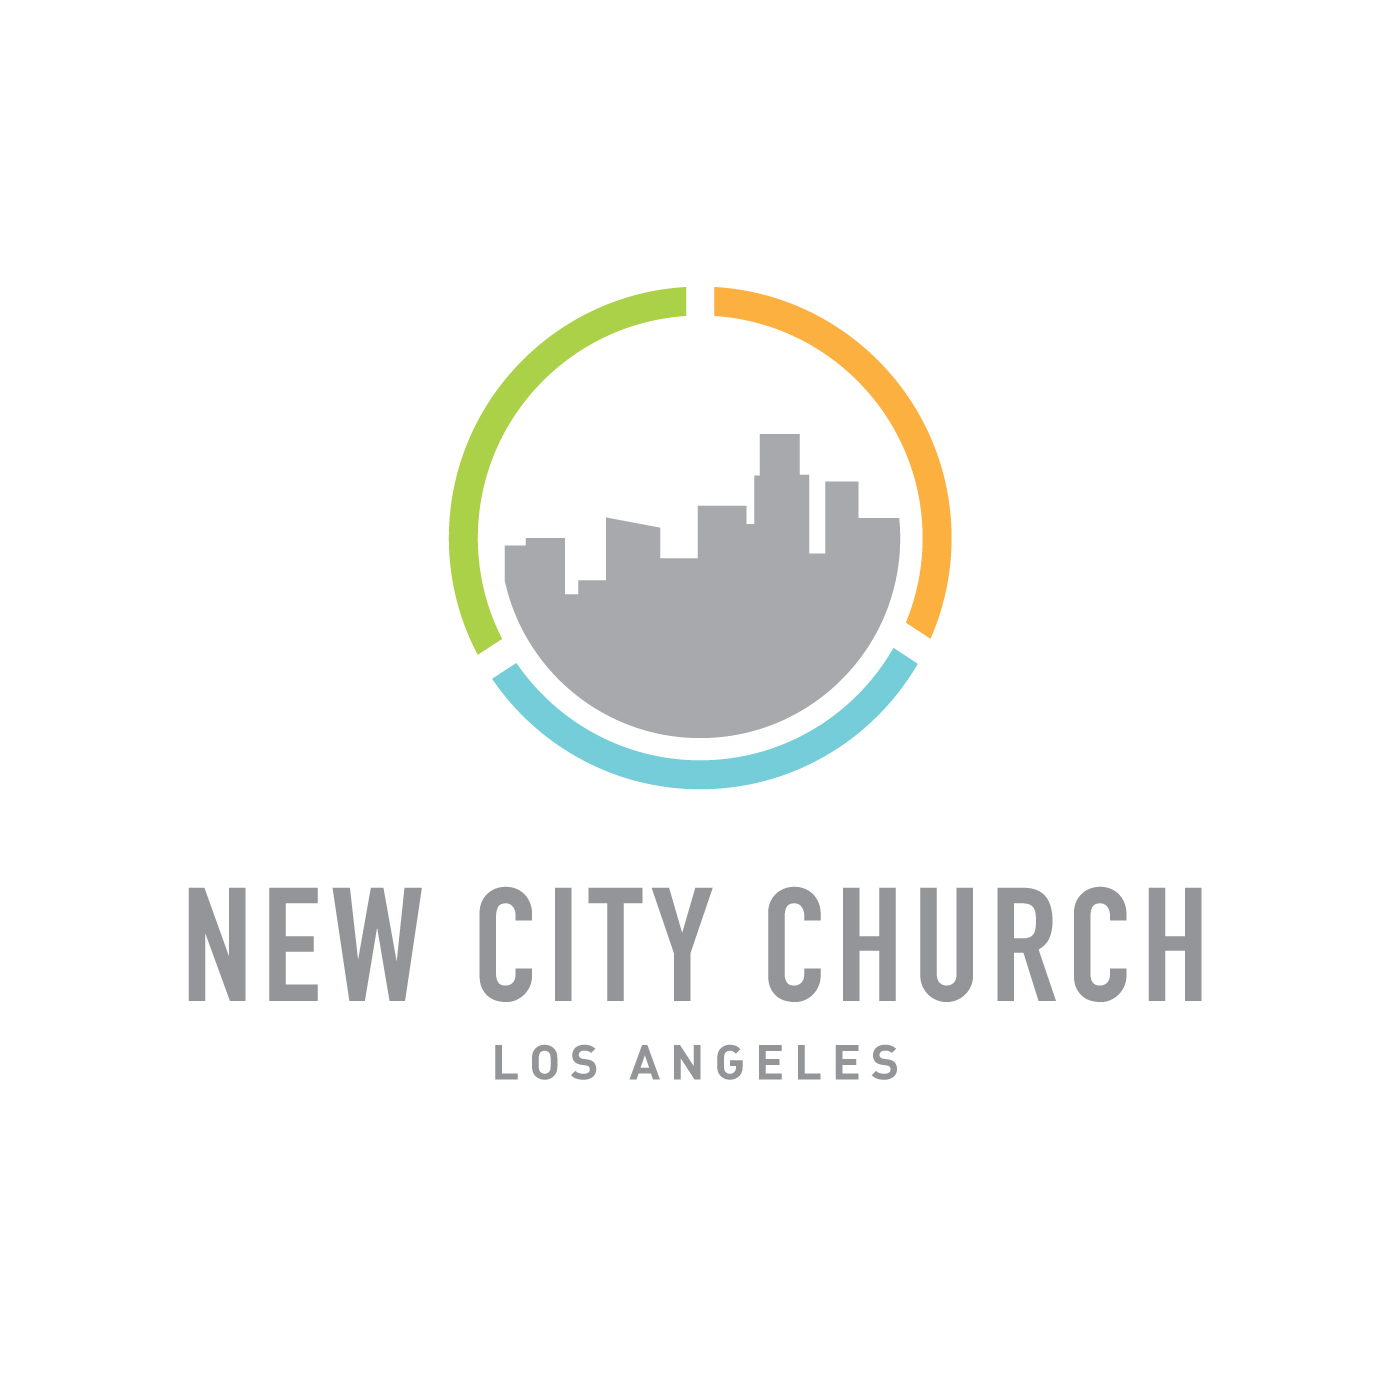 New City Church of Los Angeles